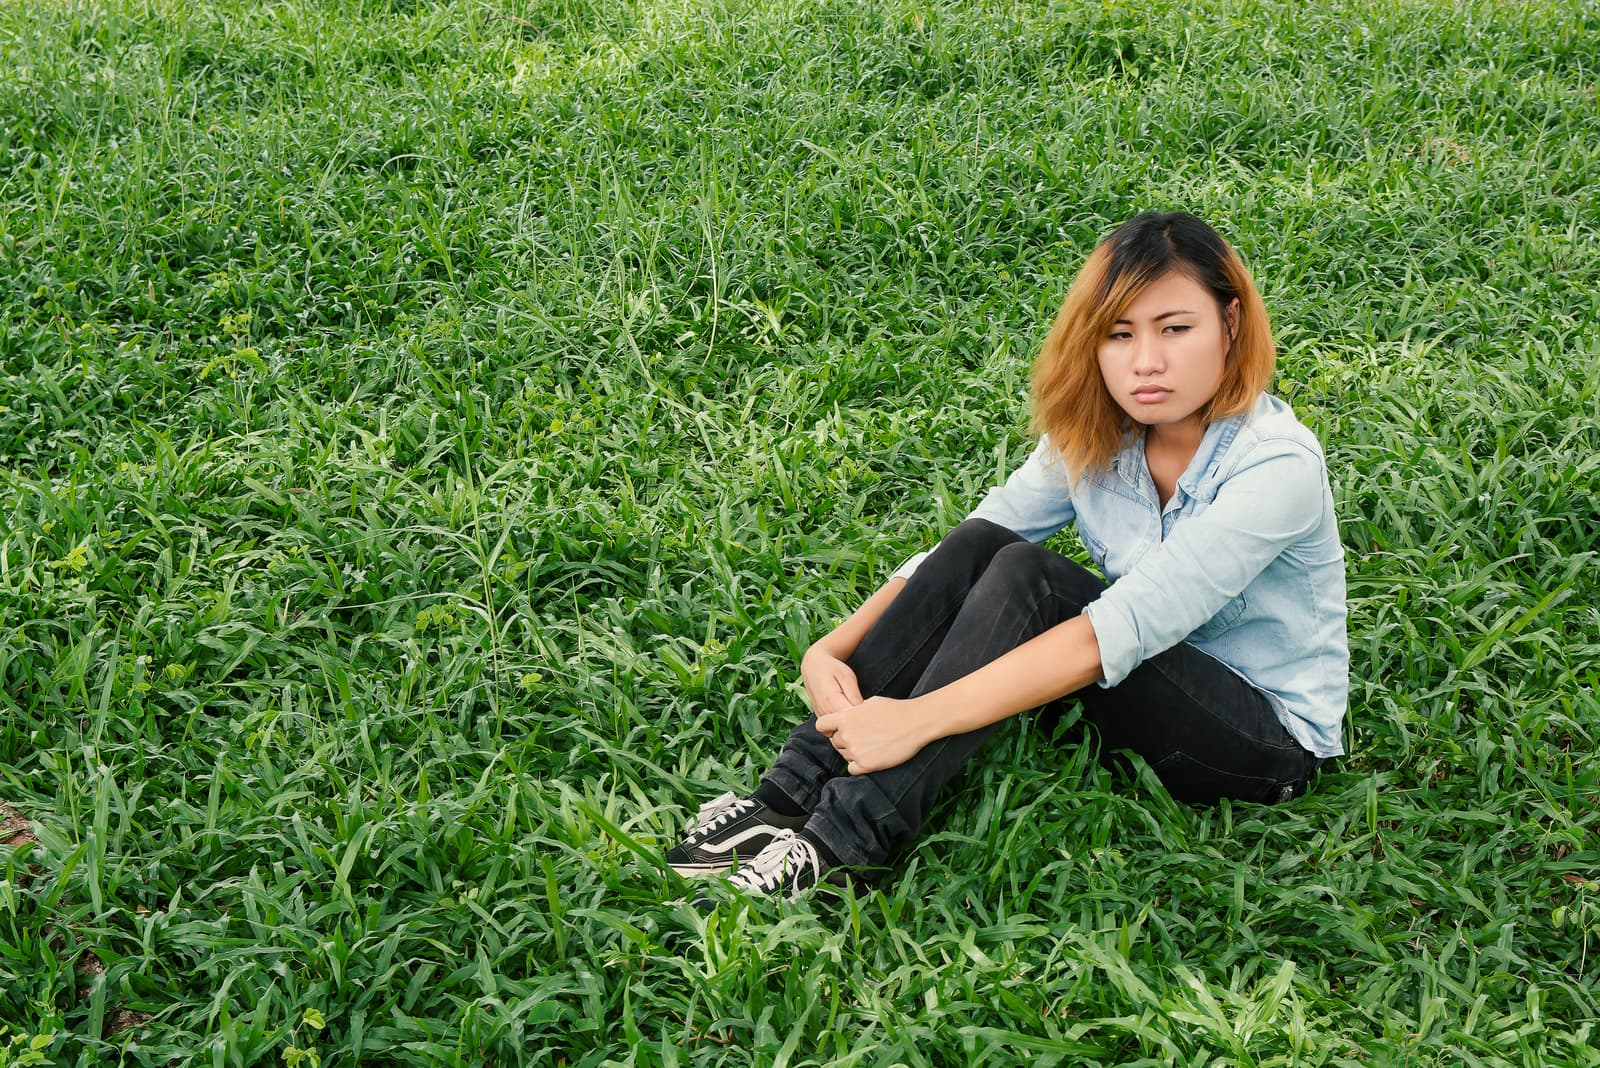 pensive woman sitting on the grass